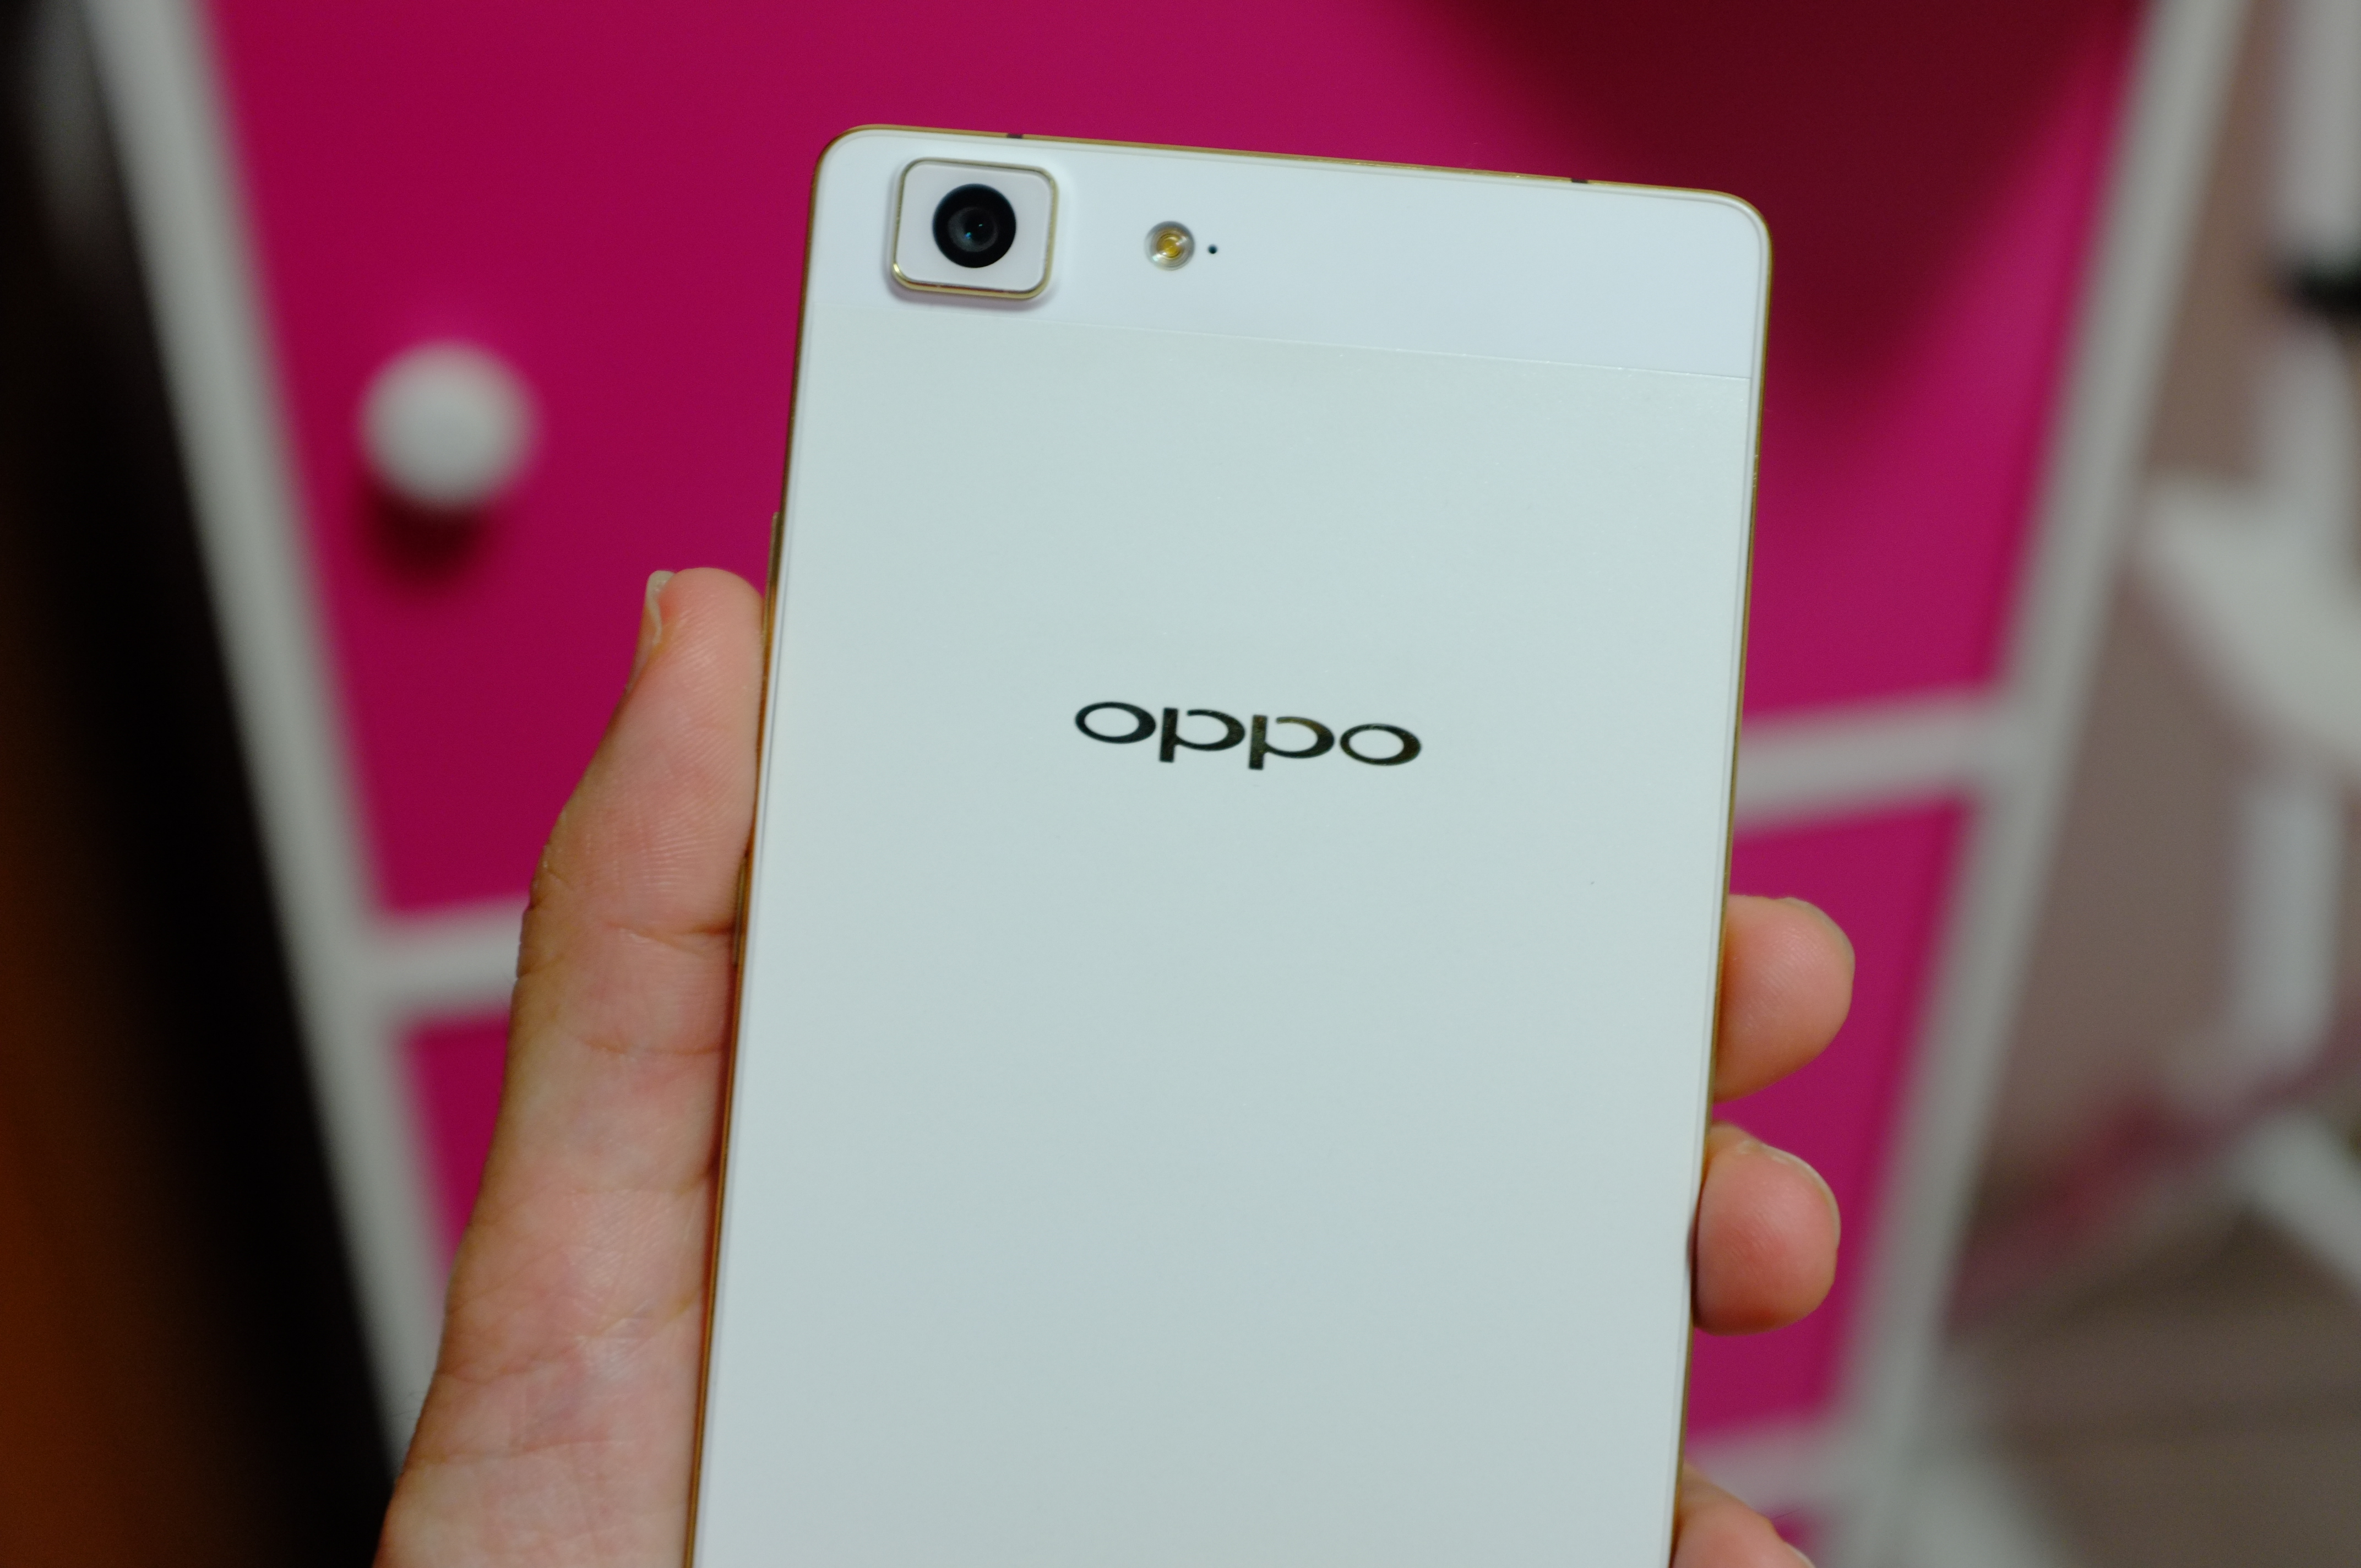 OPPO R5 – The Slimmest Smartphone In The World